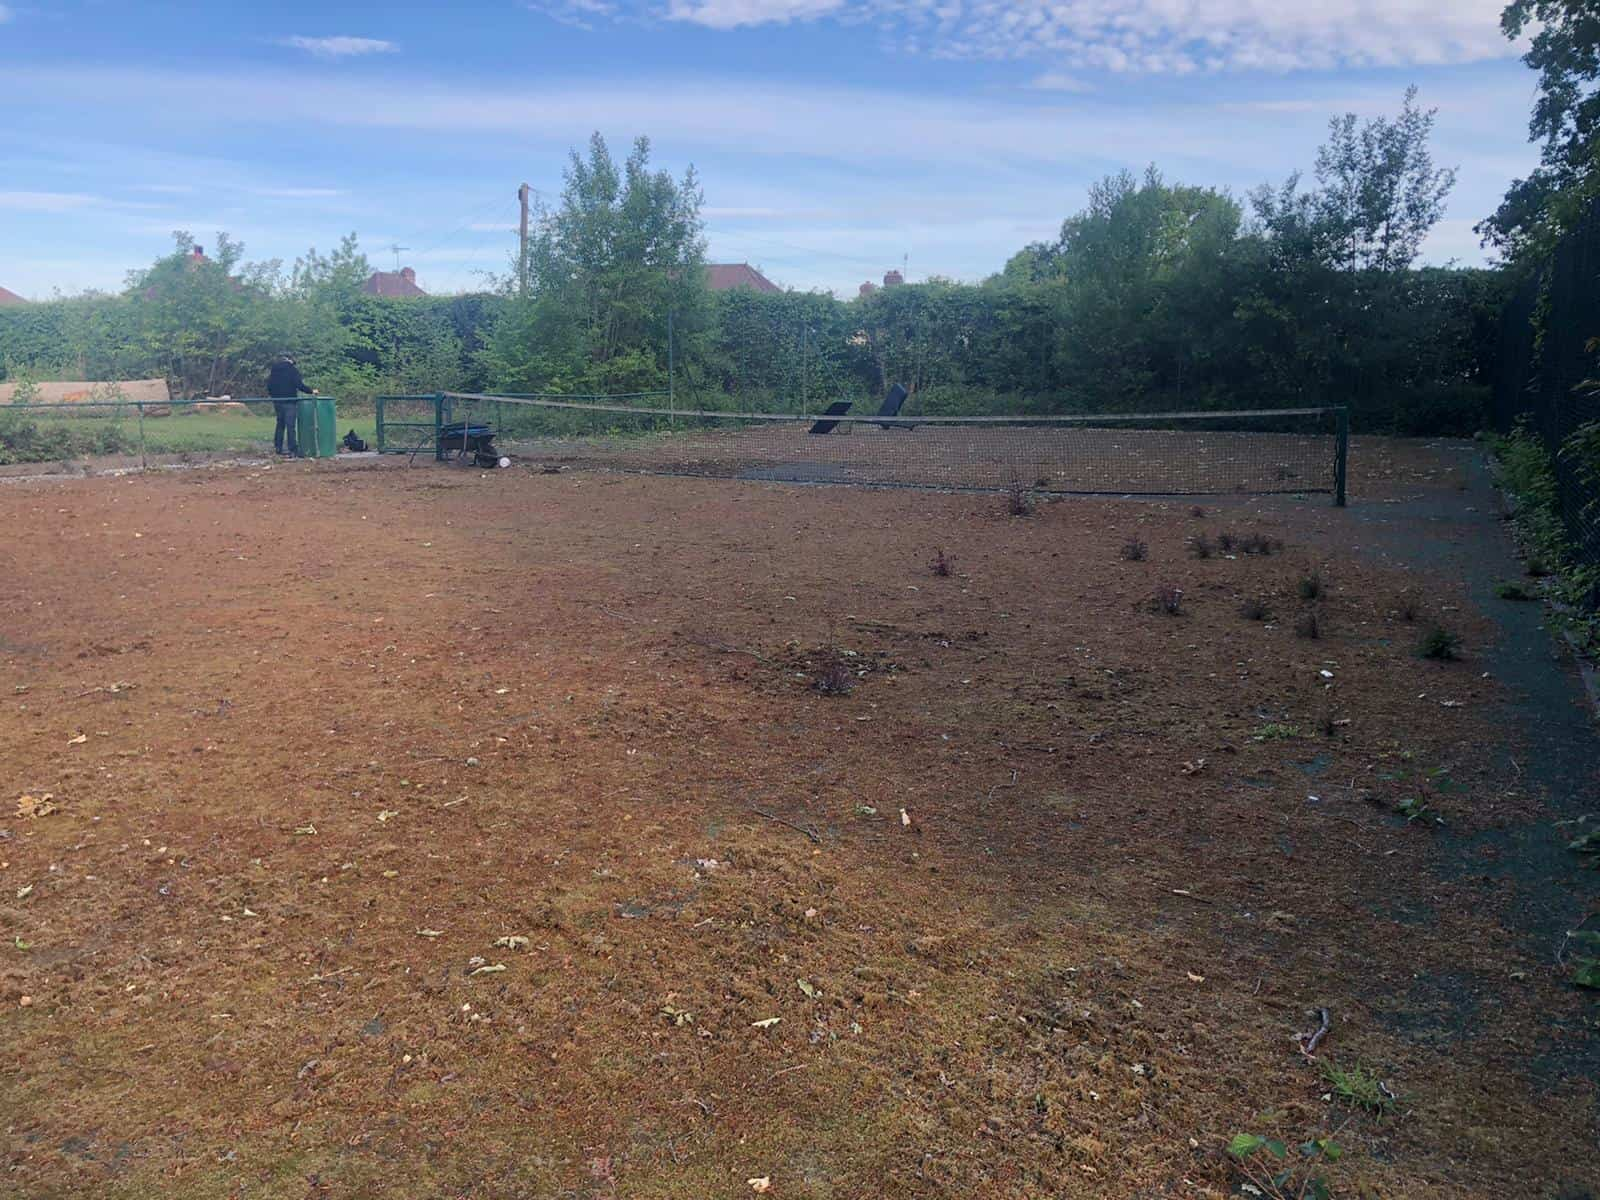 Tennis court cleaning - After